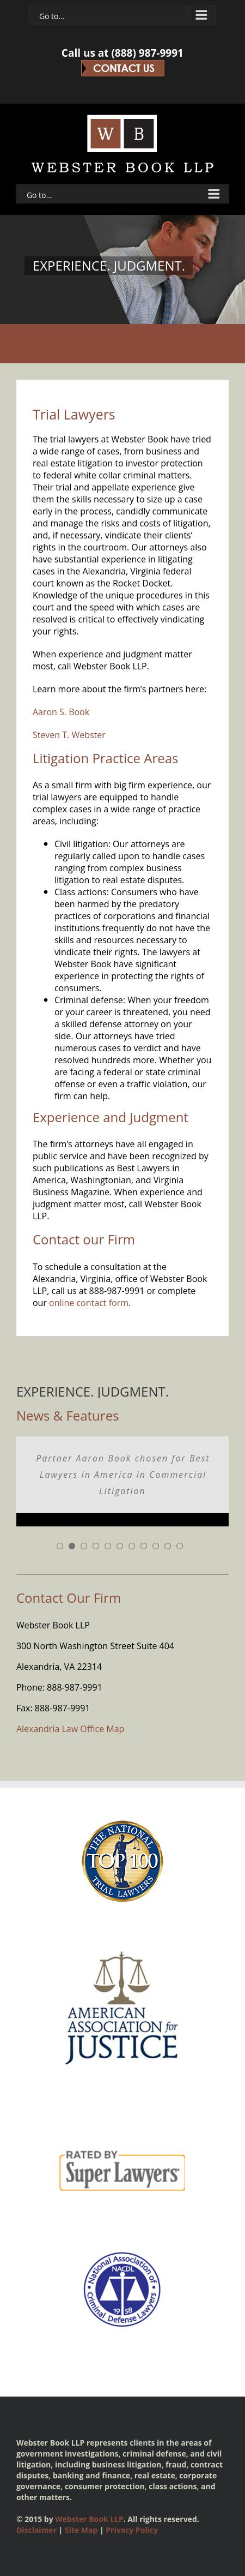 Webster Book LLP - Alexandria VA Lawyers